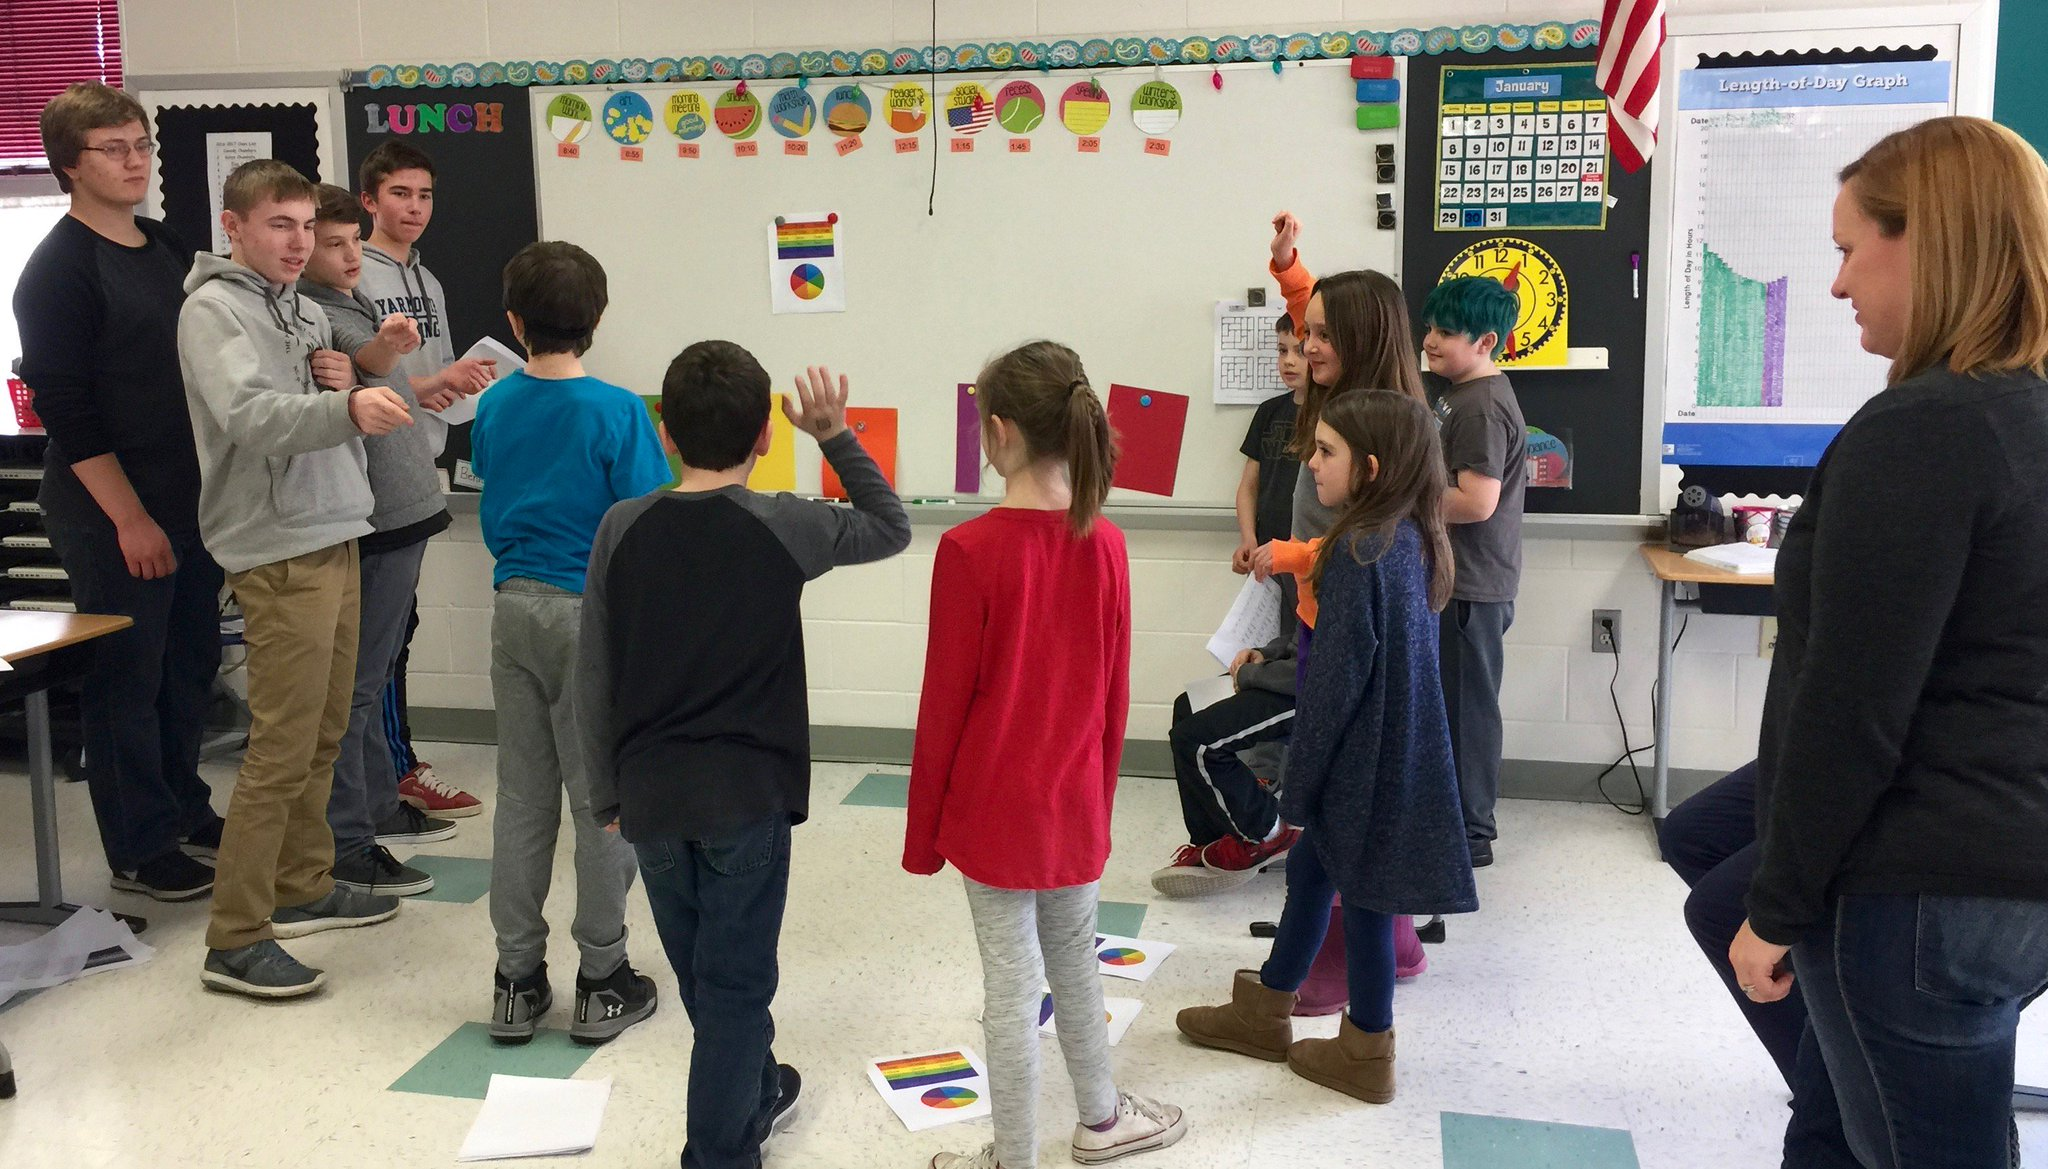 YHS French III students coincide with geography unit and teach French to YES Grade 3. #yhslearns #yeslearns Pics https://t.co/gKstjqZBcr https://t.co/Xb2i5lov3Z